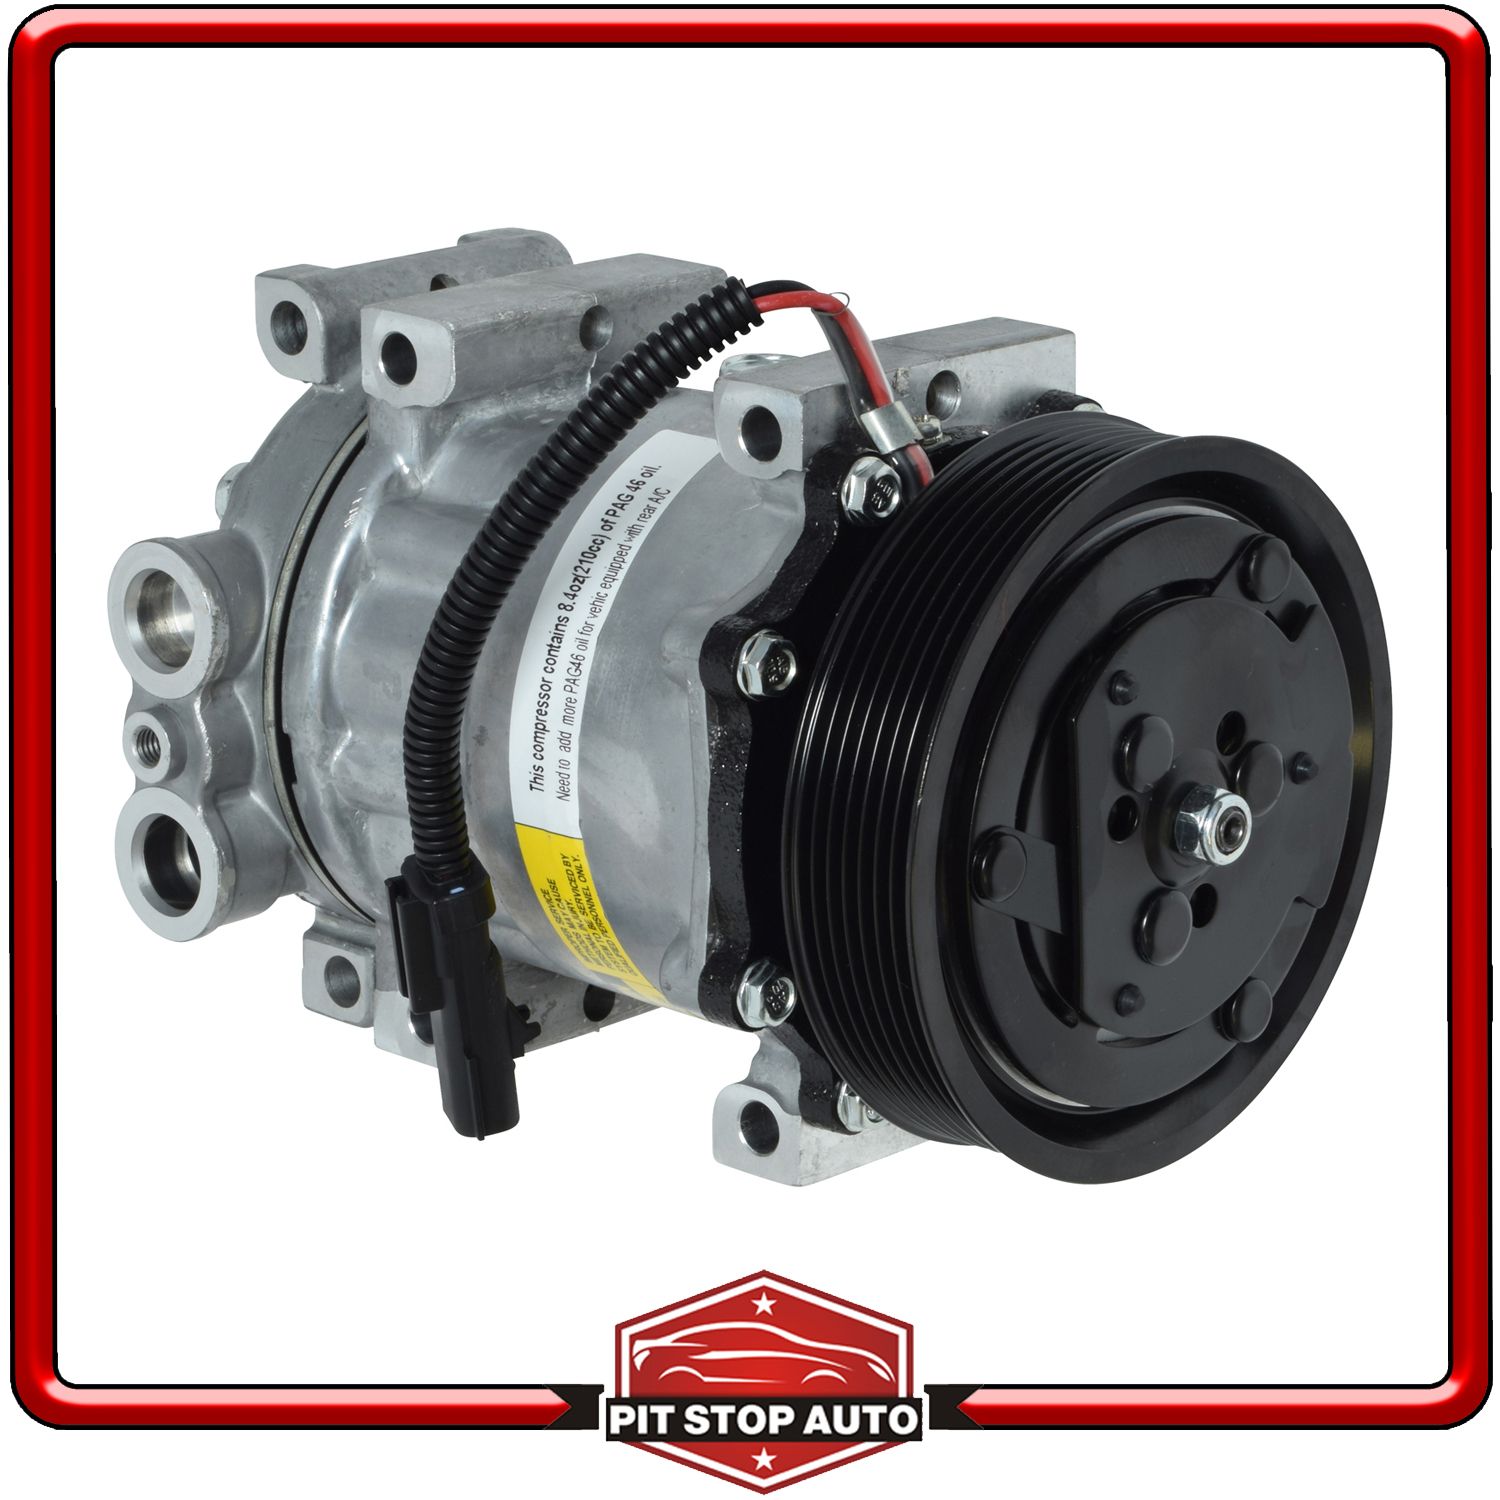 A//C Compressor fits 2002-2003 Dodge Dakota Durango Ram 1500 2500 3500 77562